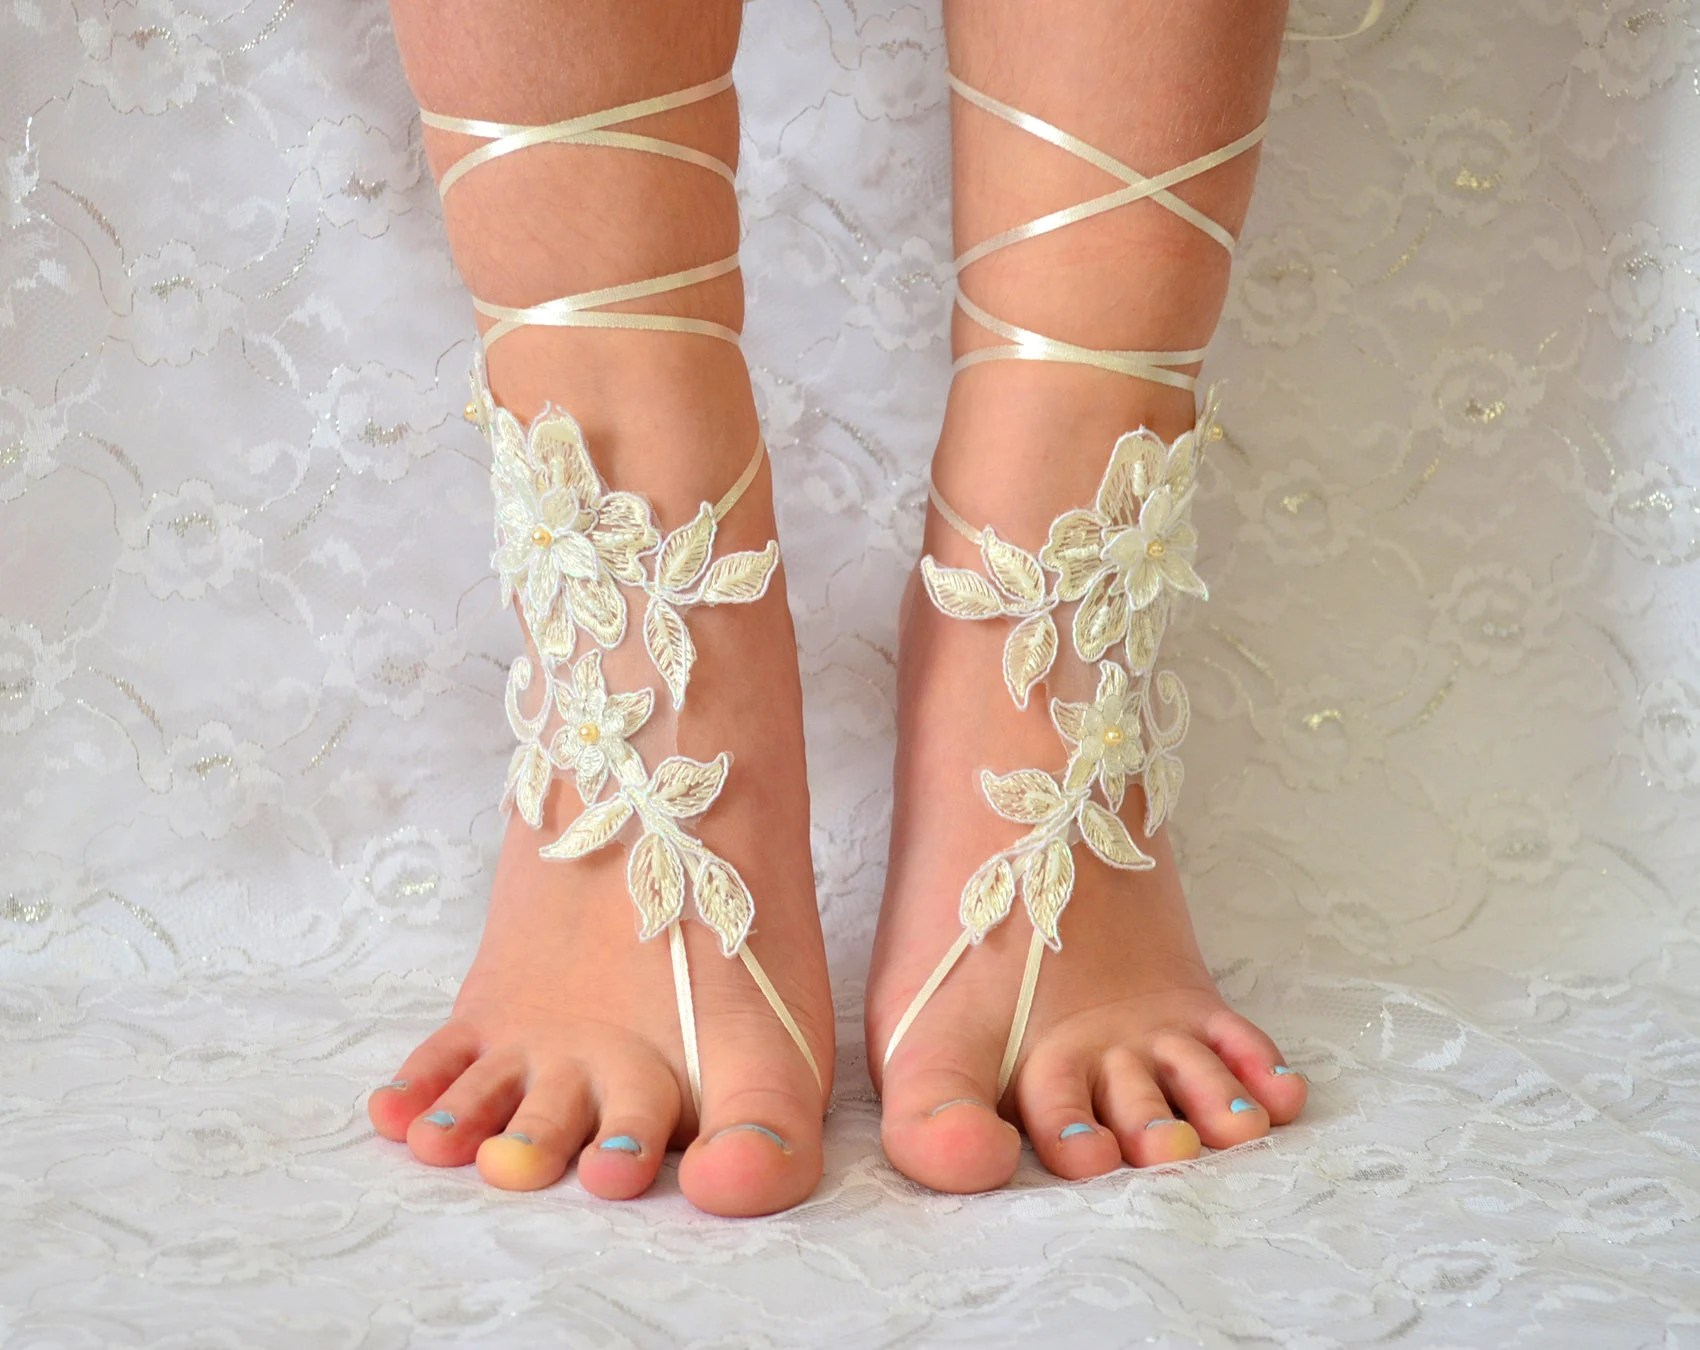 Lace Wedding Shoes Ivory Barefoot Sandles Sandals Beach